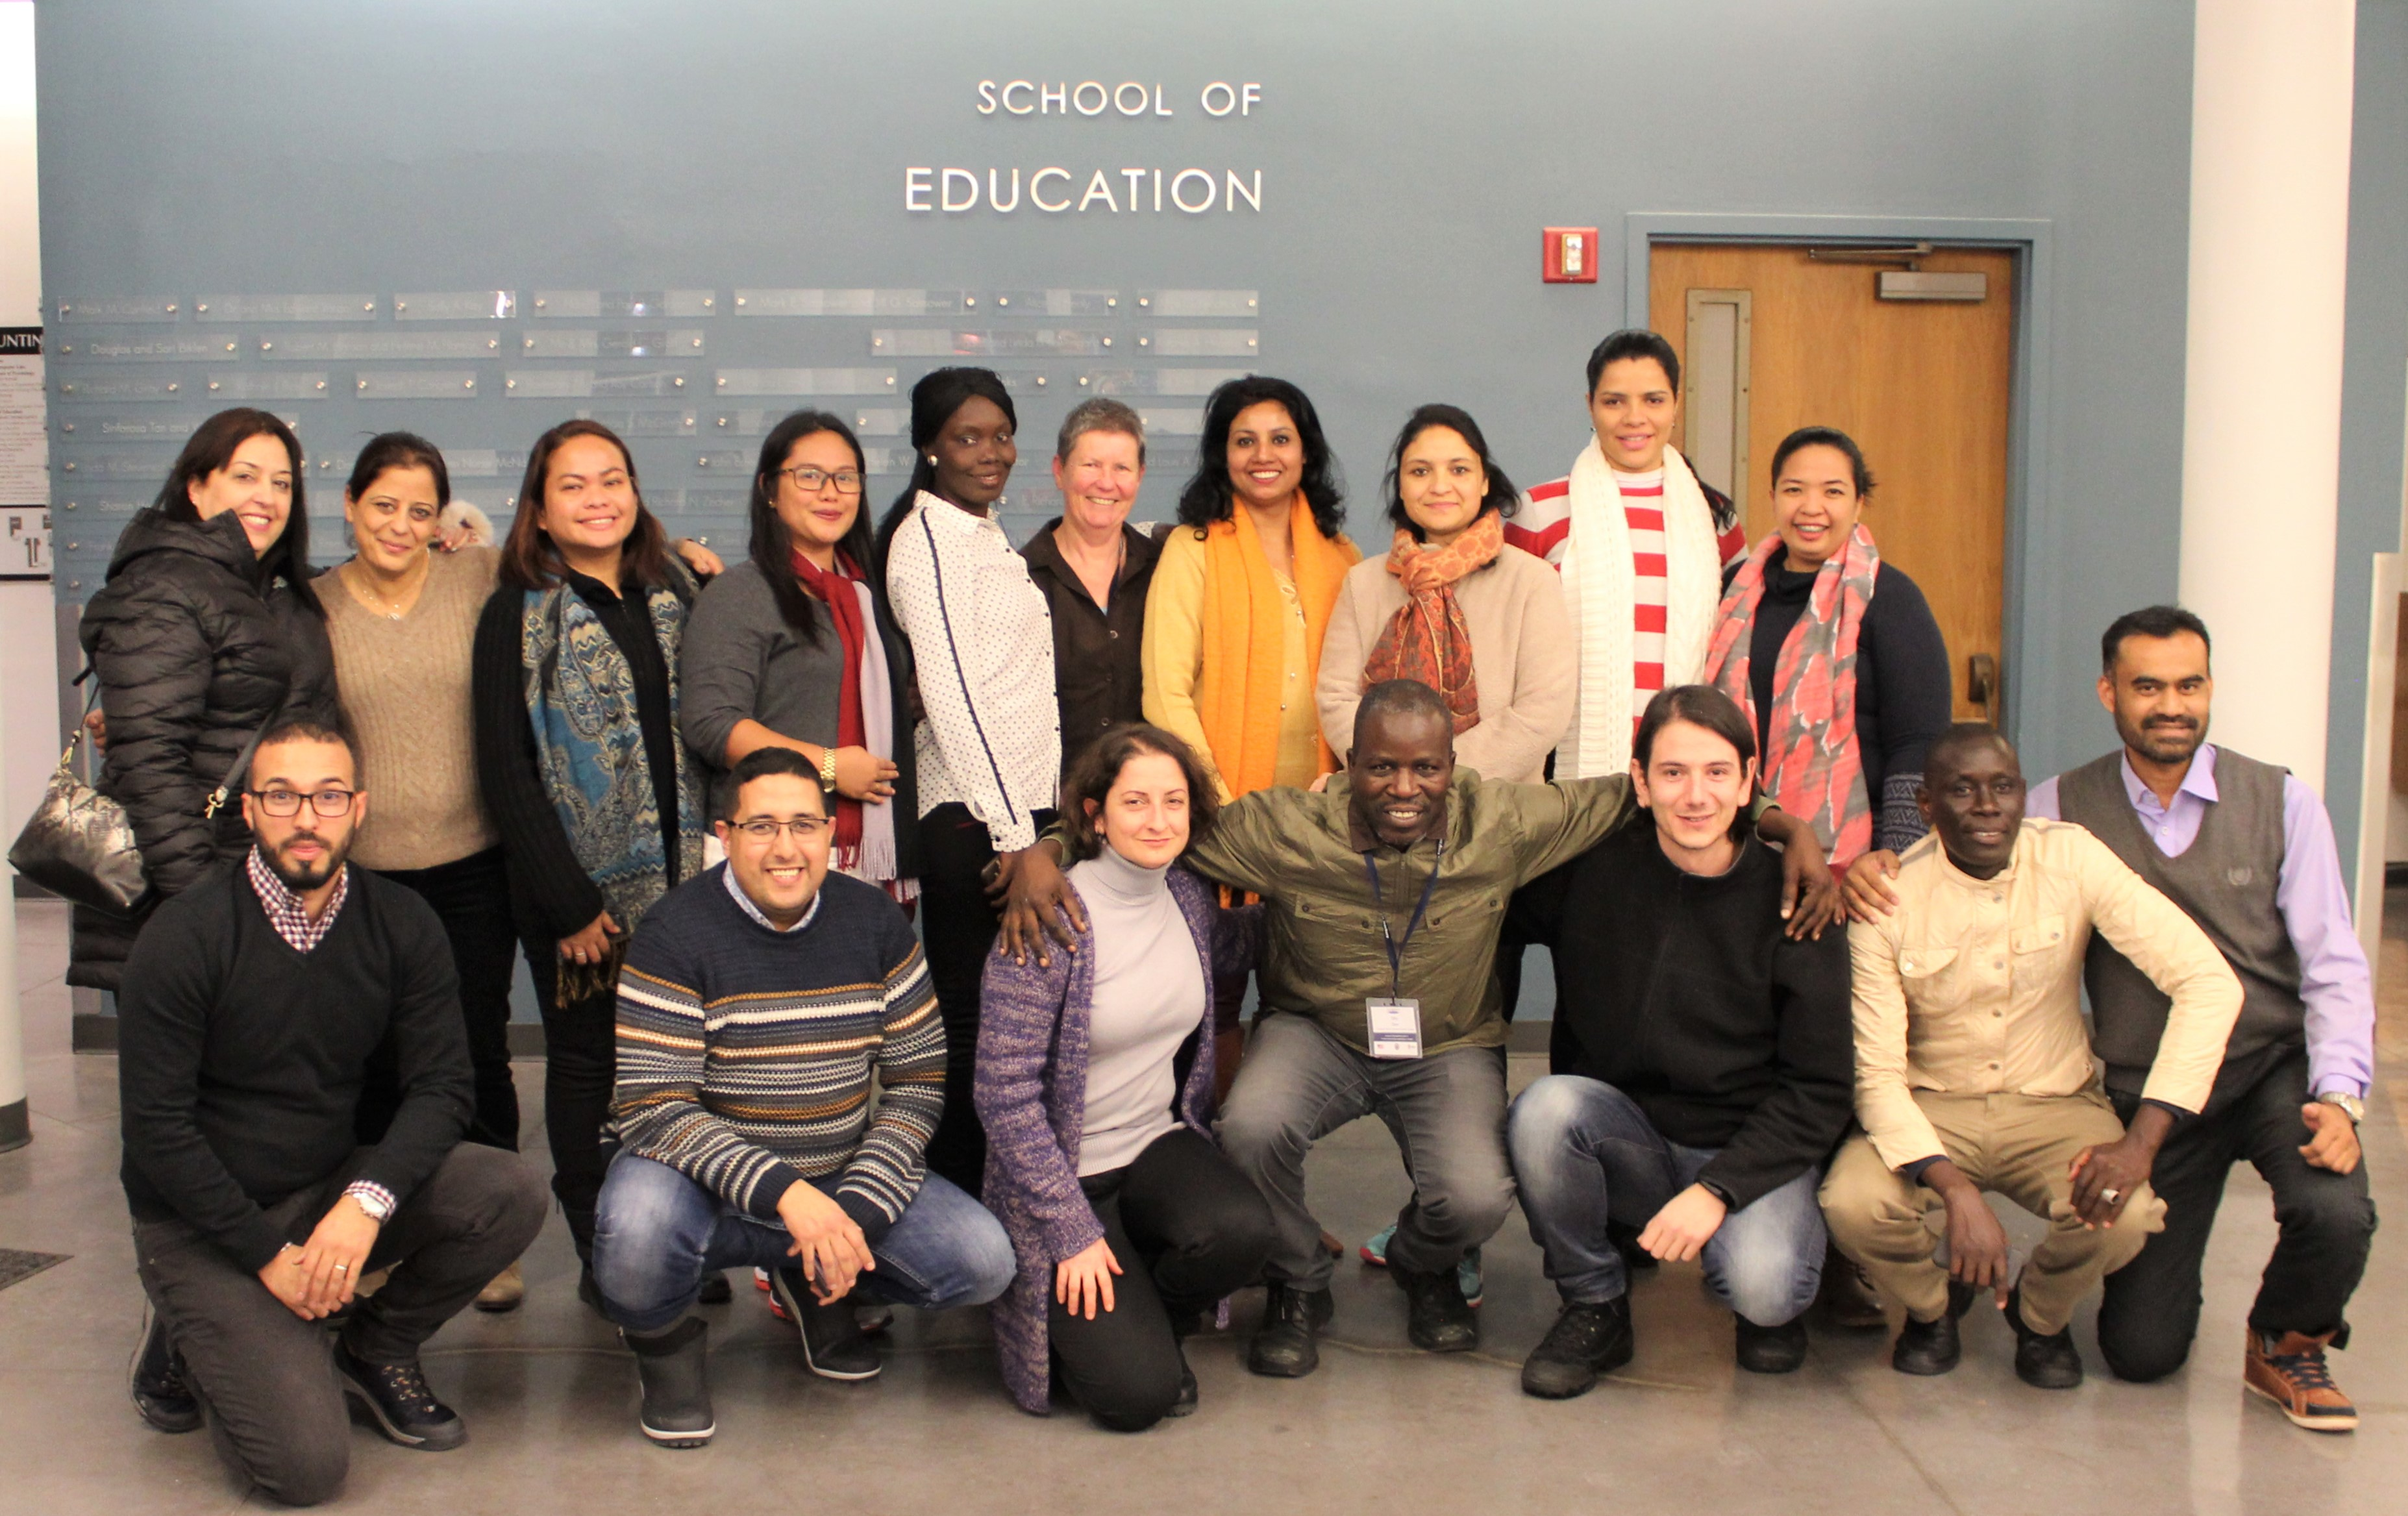 Fulbright Distinguished Teachers pose under the School of Education sign